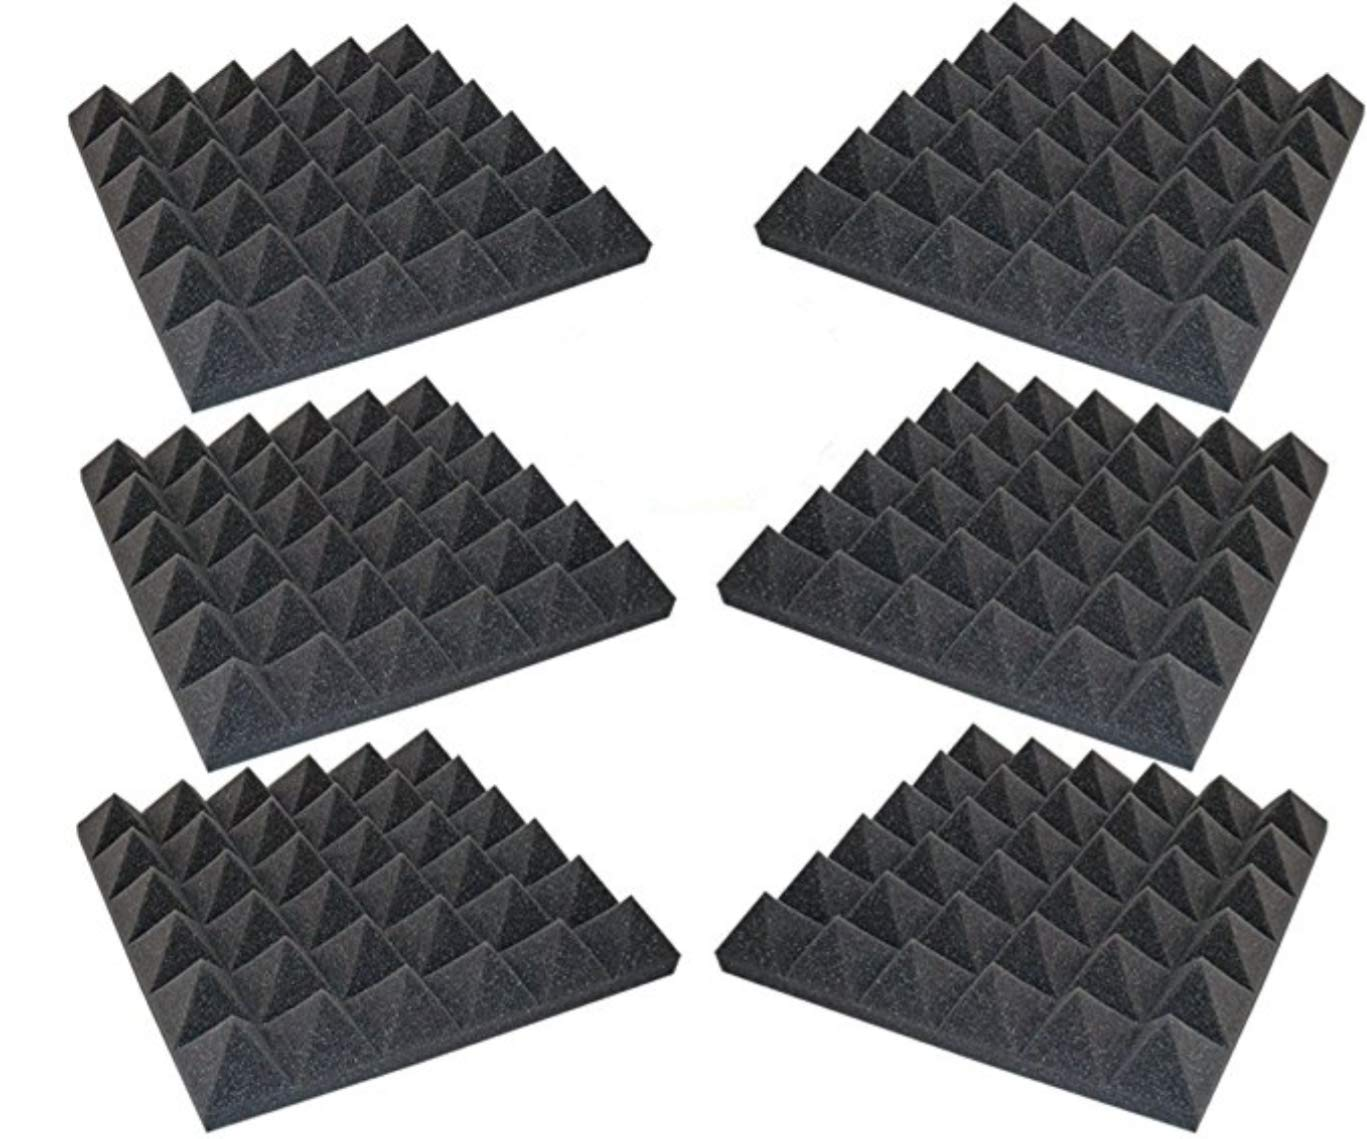 Foamily 6 Pack - Acoustic Foam Sound Absorption Pyramid Studio Treatment Wall Panels, 2'' X 12'' X 12''